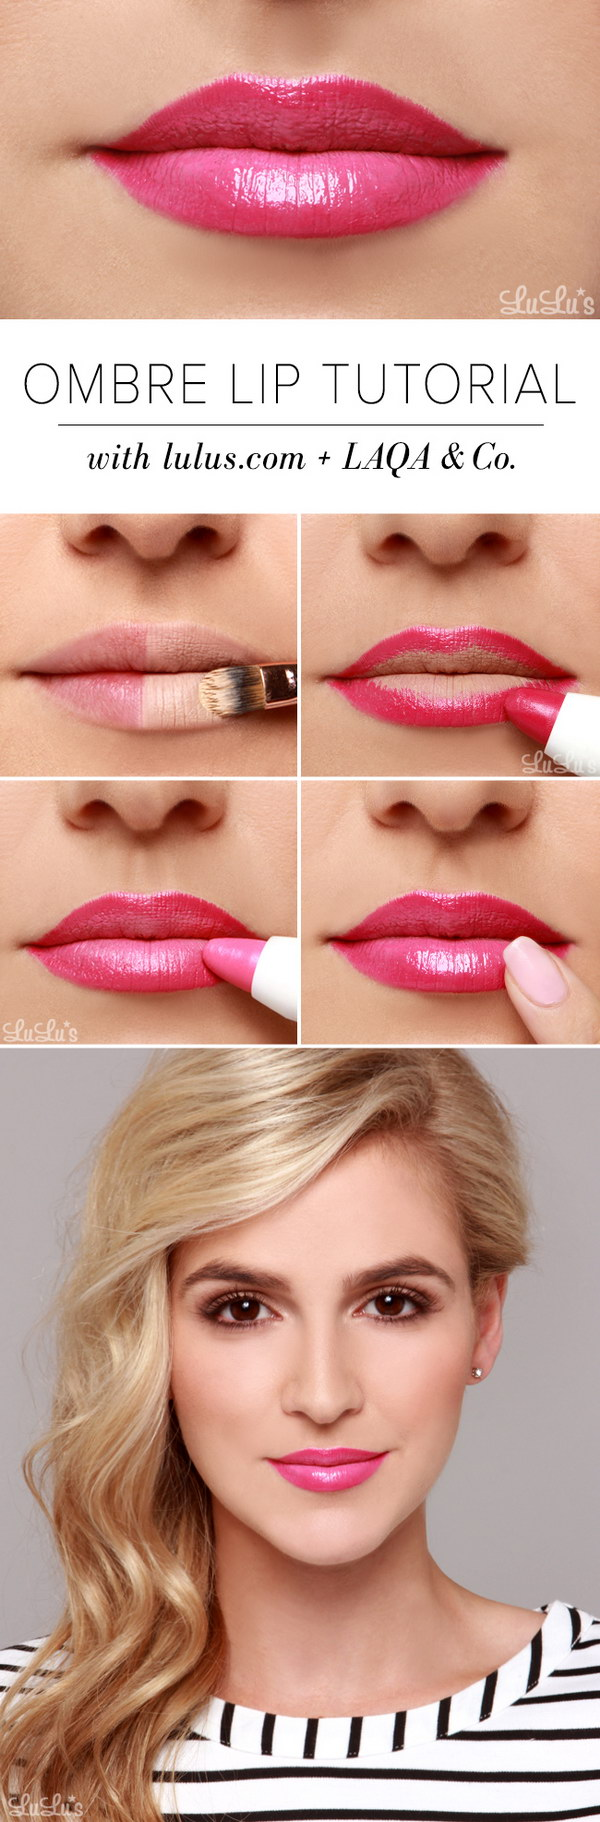 How to Get Pink Ombre Lip.